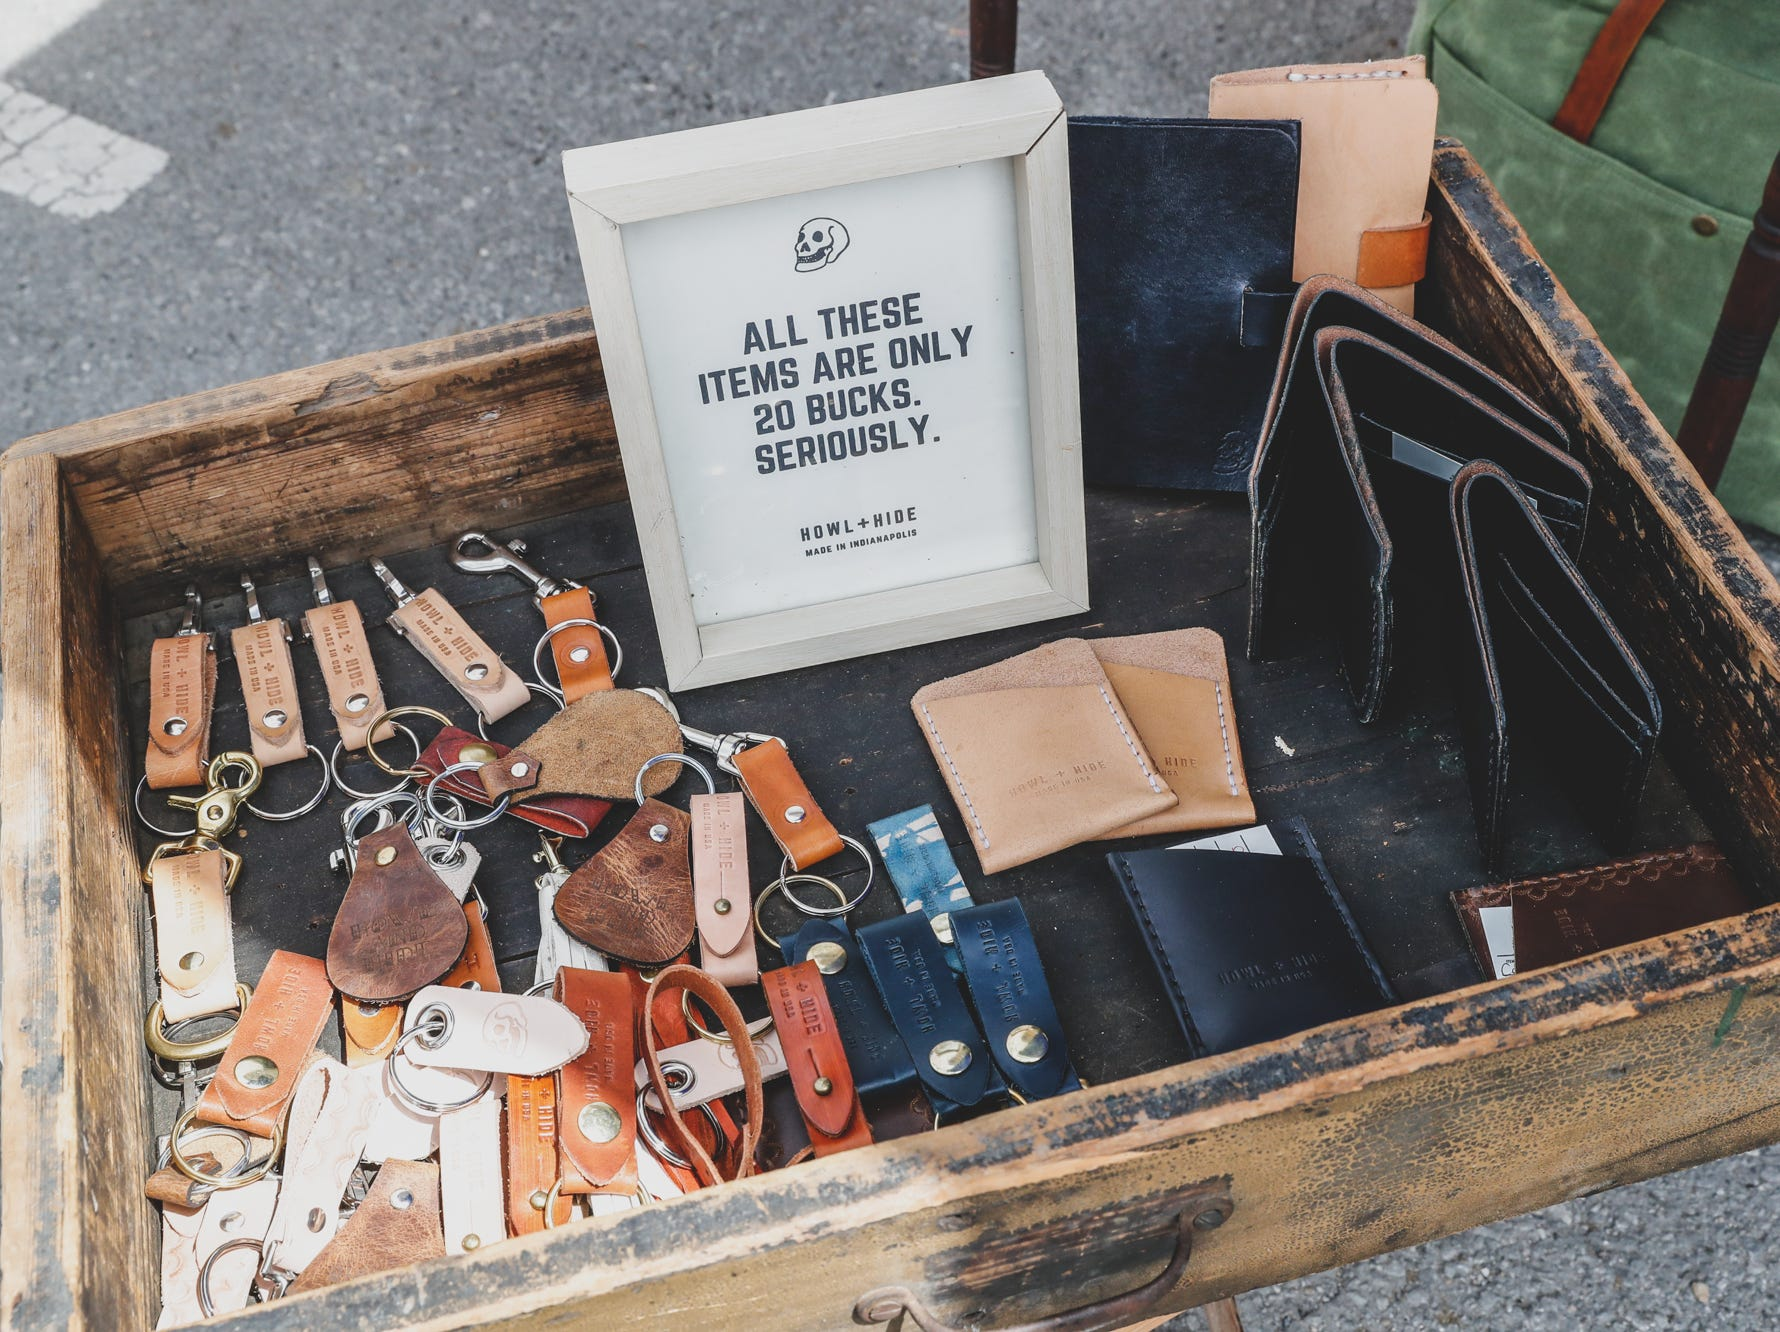 Leather and canvass goods are sold in the Howl + Hide booth during the Virginia Avenue Music Fest, held in Fountain Square, located in Indianapolis, on Saturday, May 11, 2019.